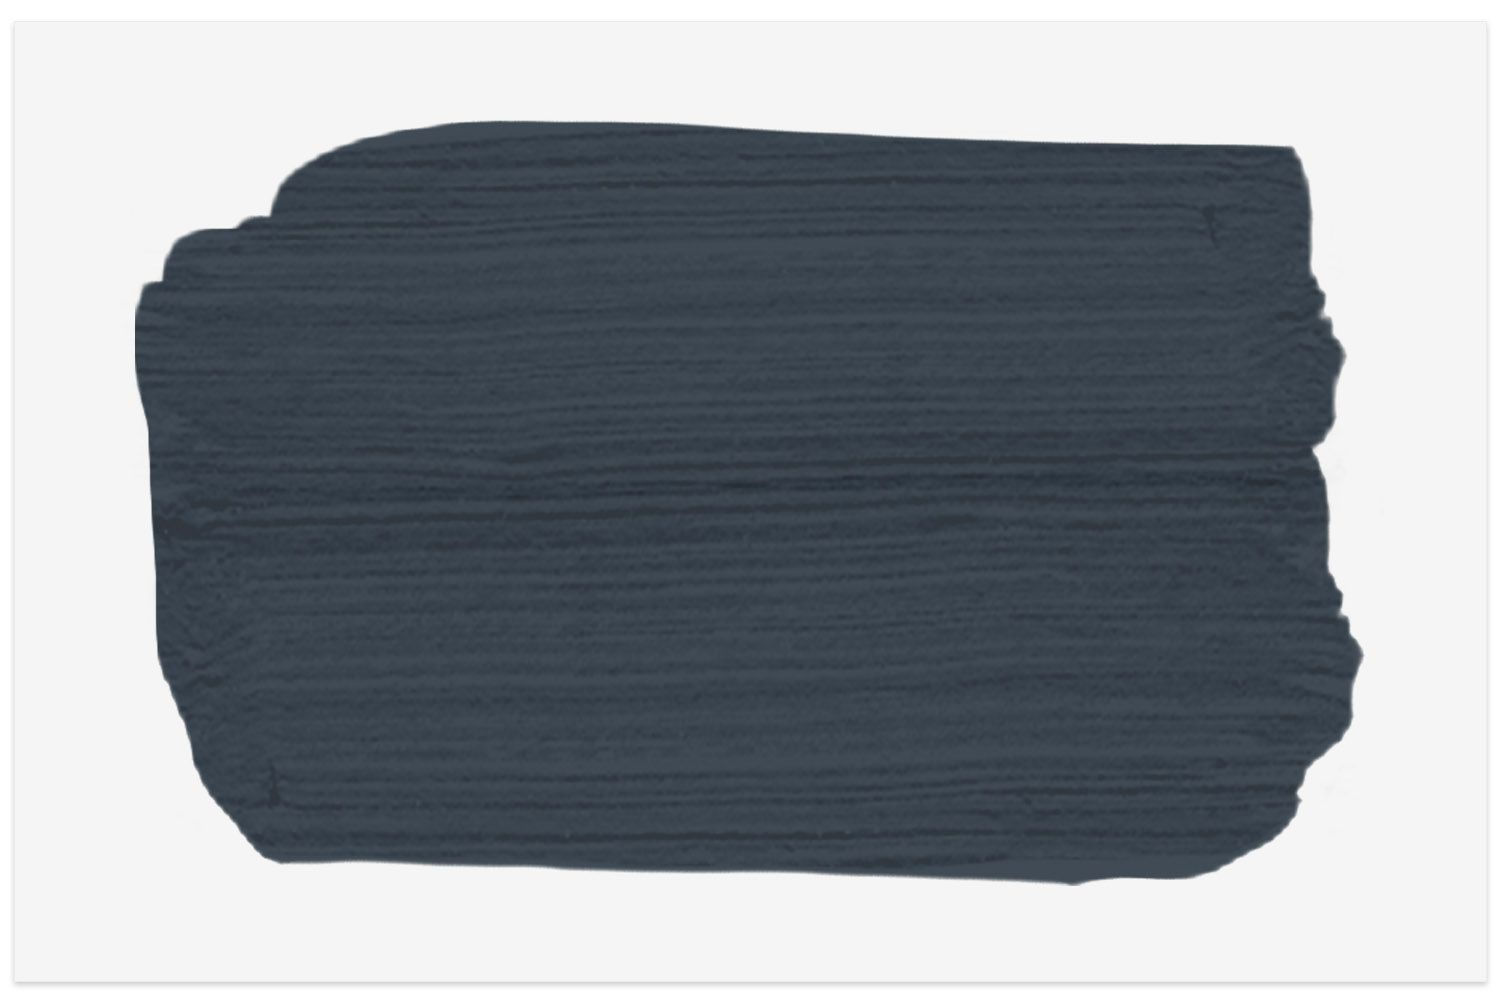 Blue Note 2129-30 paint swatch from Benjamin Moore